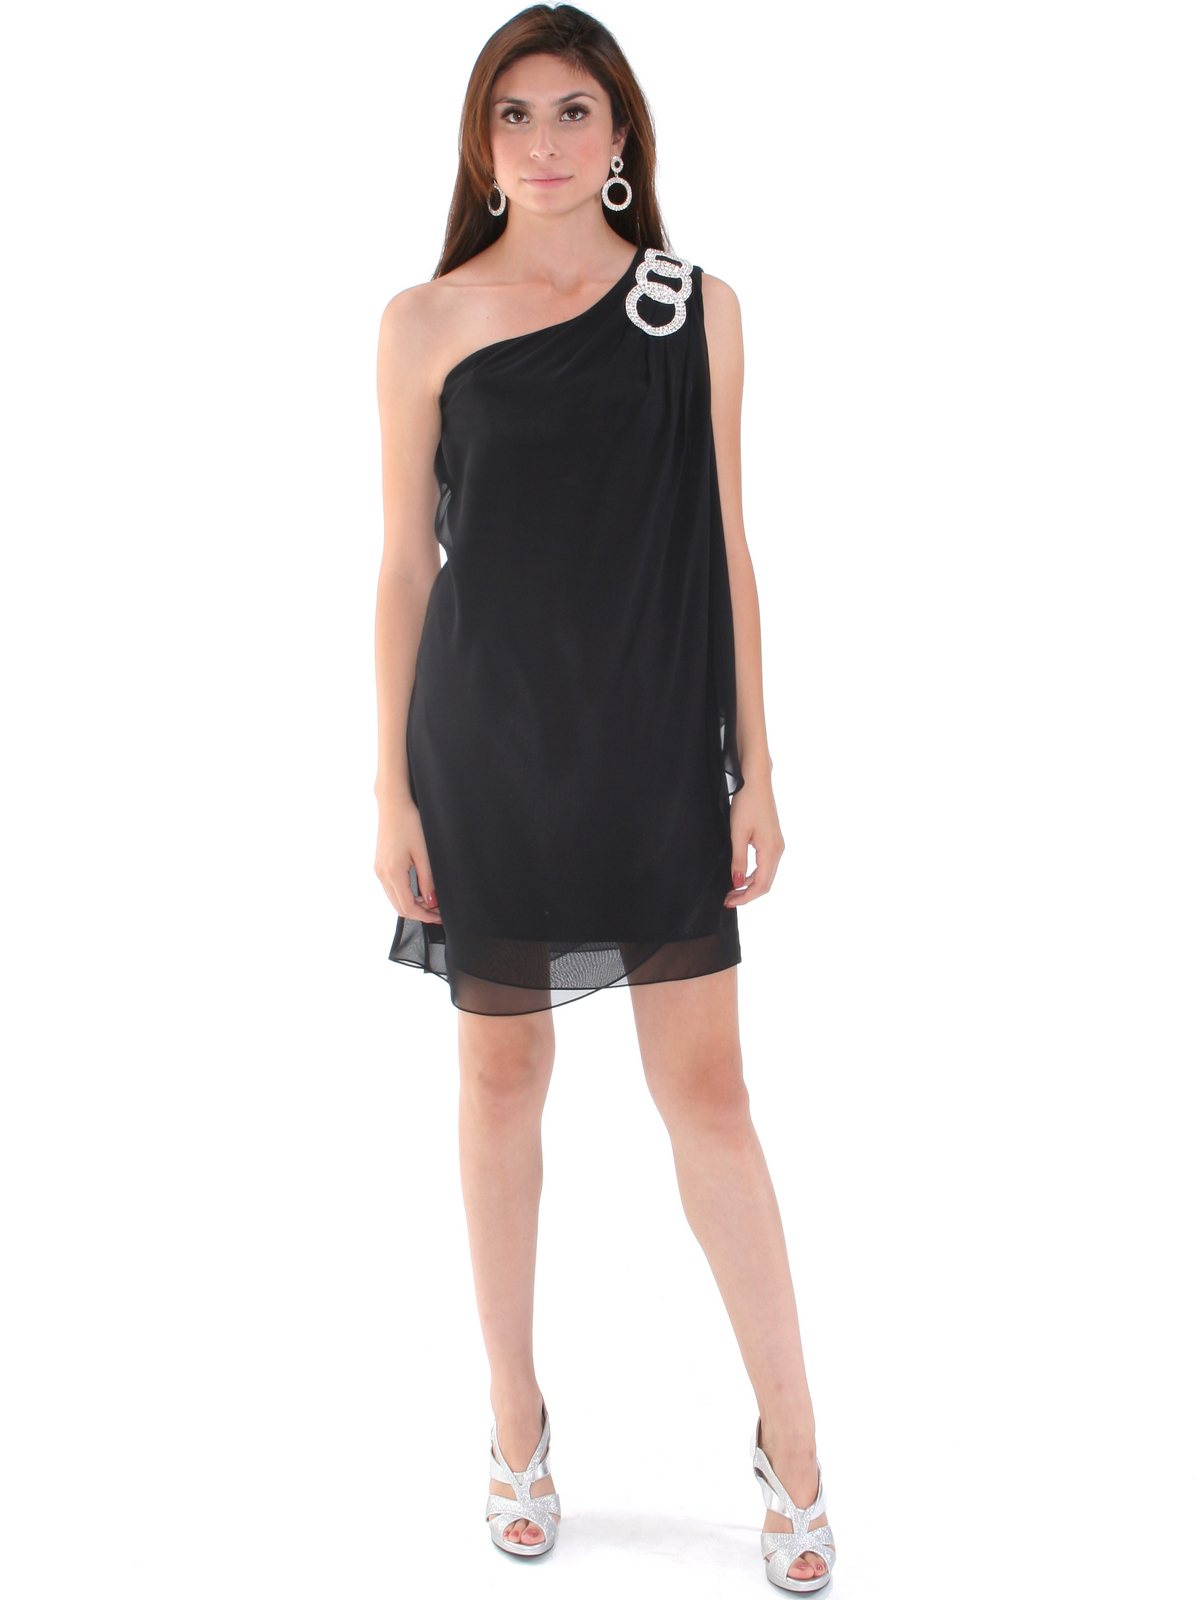 Black One Shoulder Chiffon Cocktail Dress - Sung Boutique L.A.